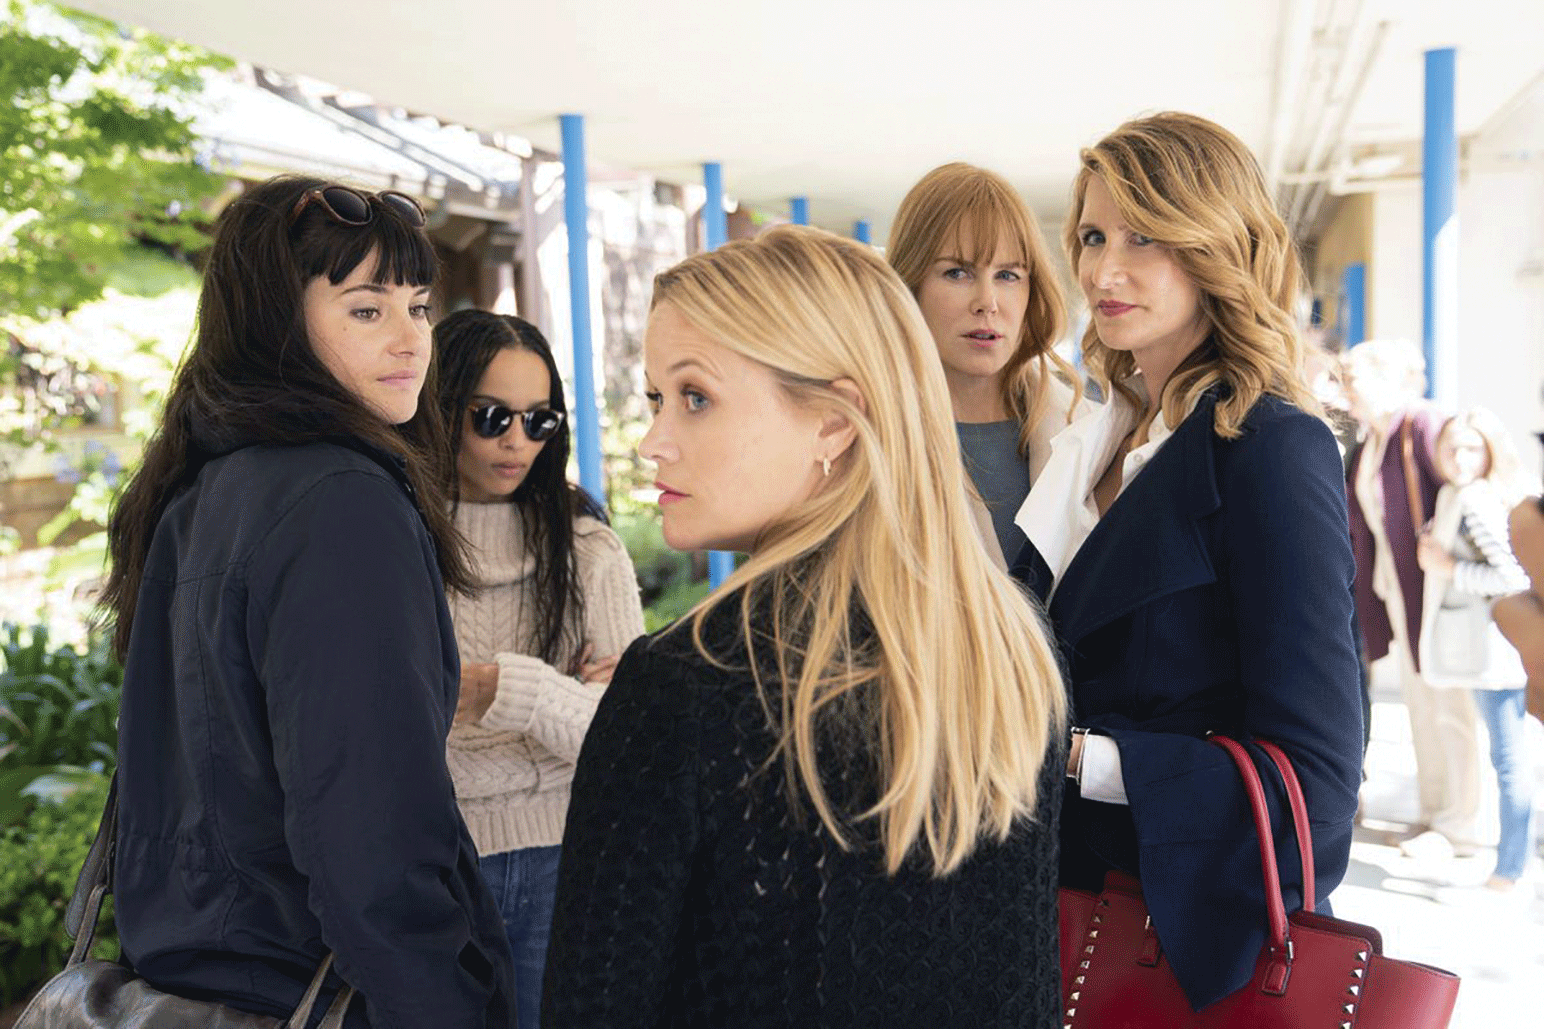 The disappointing second series of Big Little Lies went out with a whimper